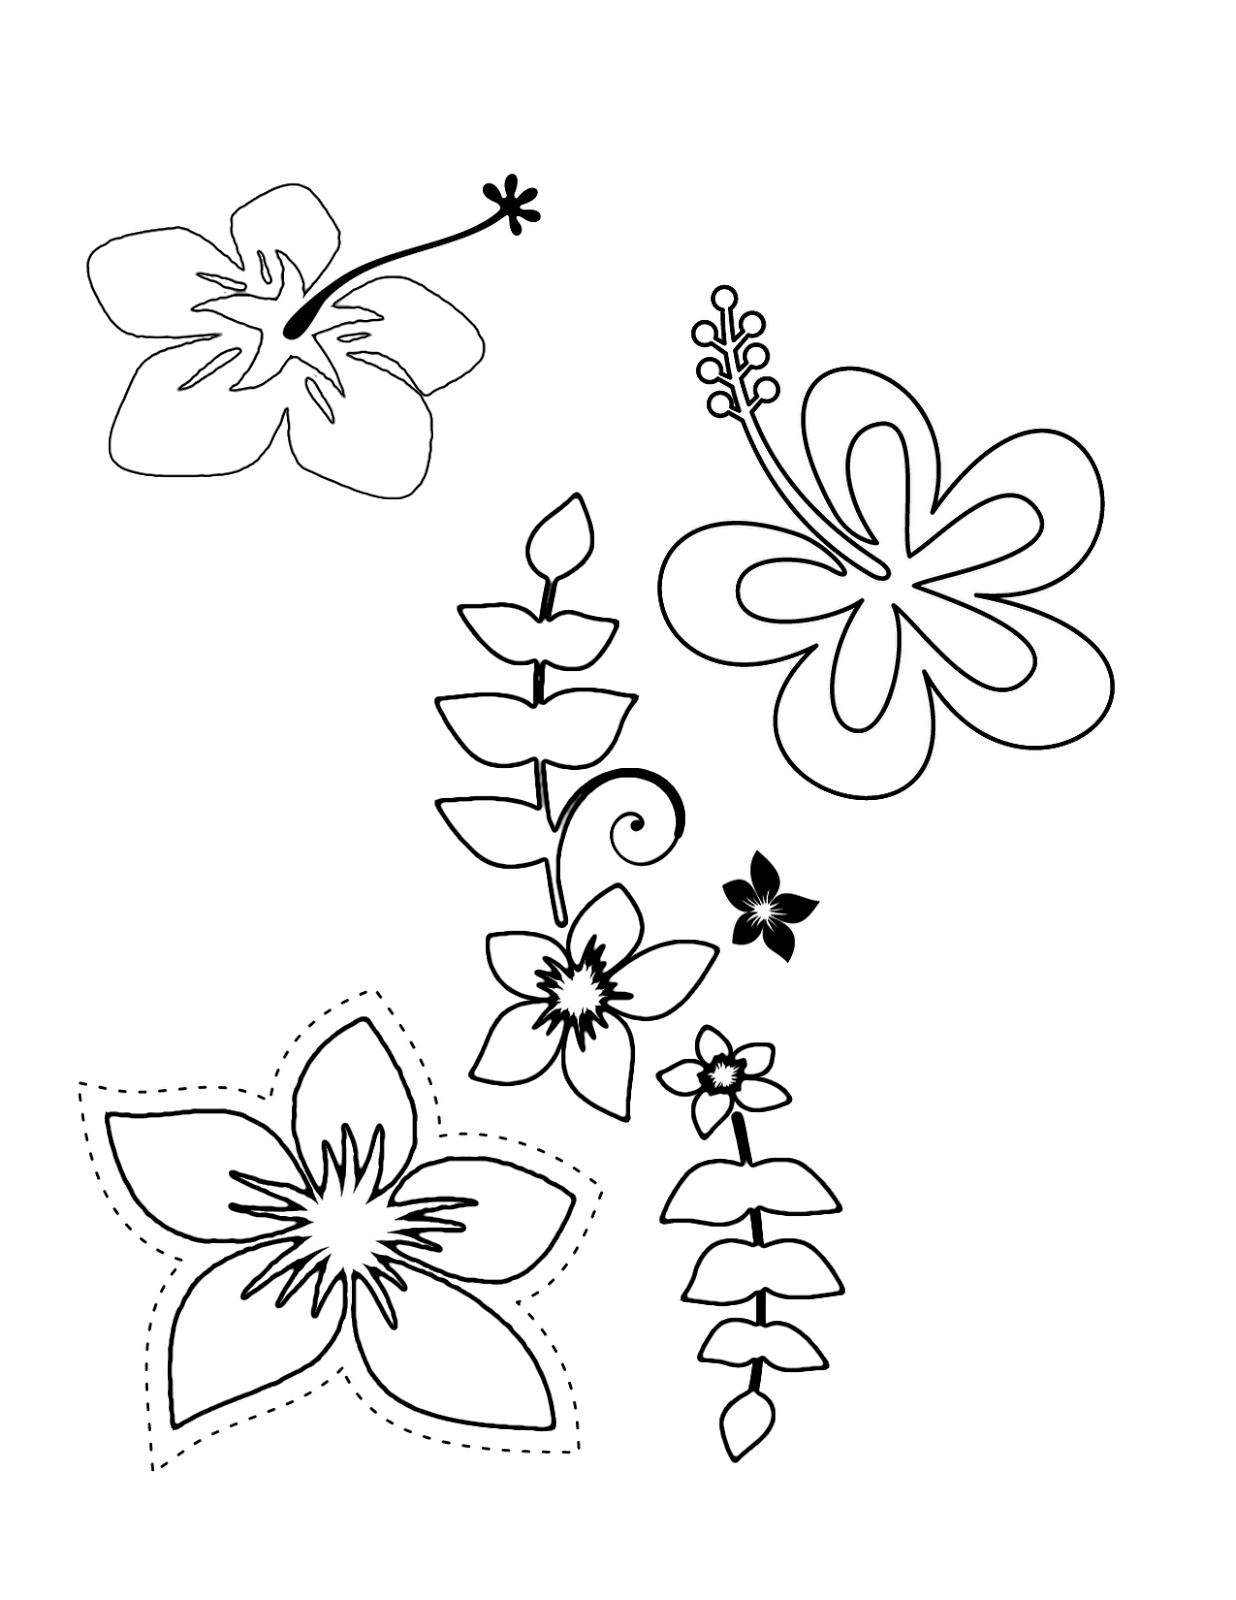 Tropical Flower Coloring Pages Flower Coloring Pages Flower Printable Hawaiian Flower Drawing